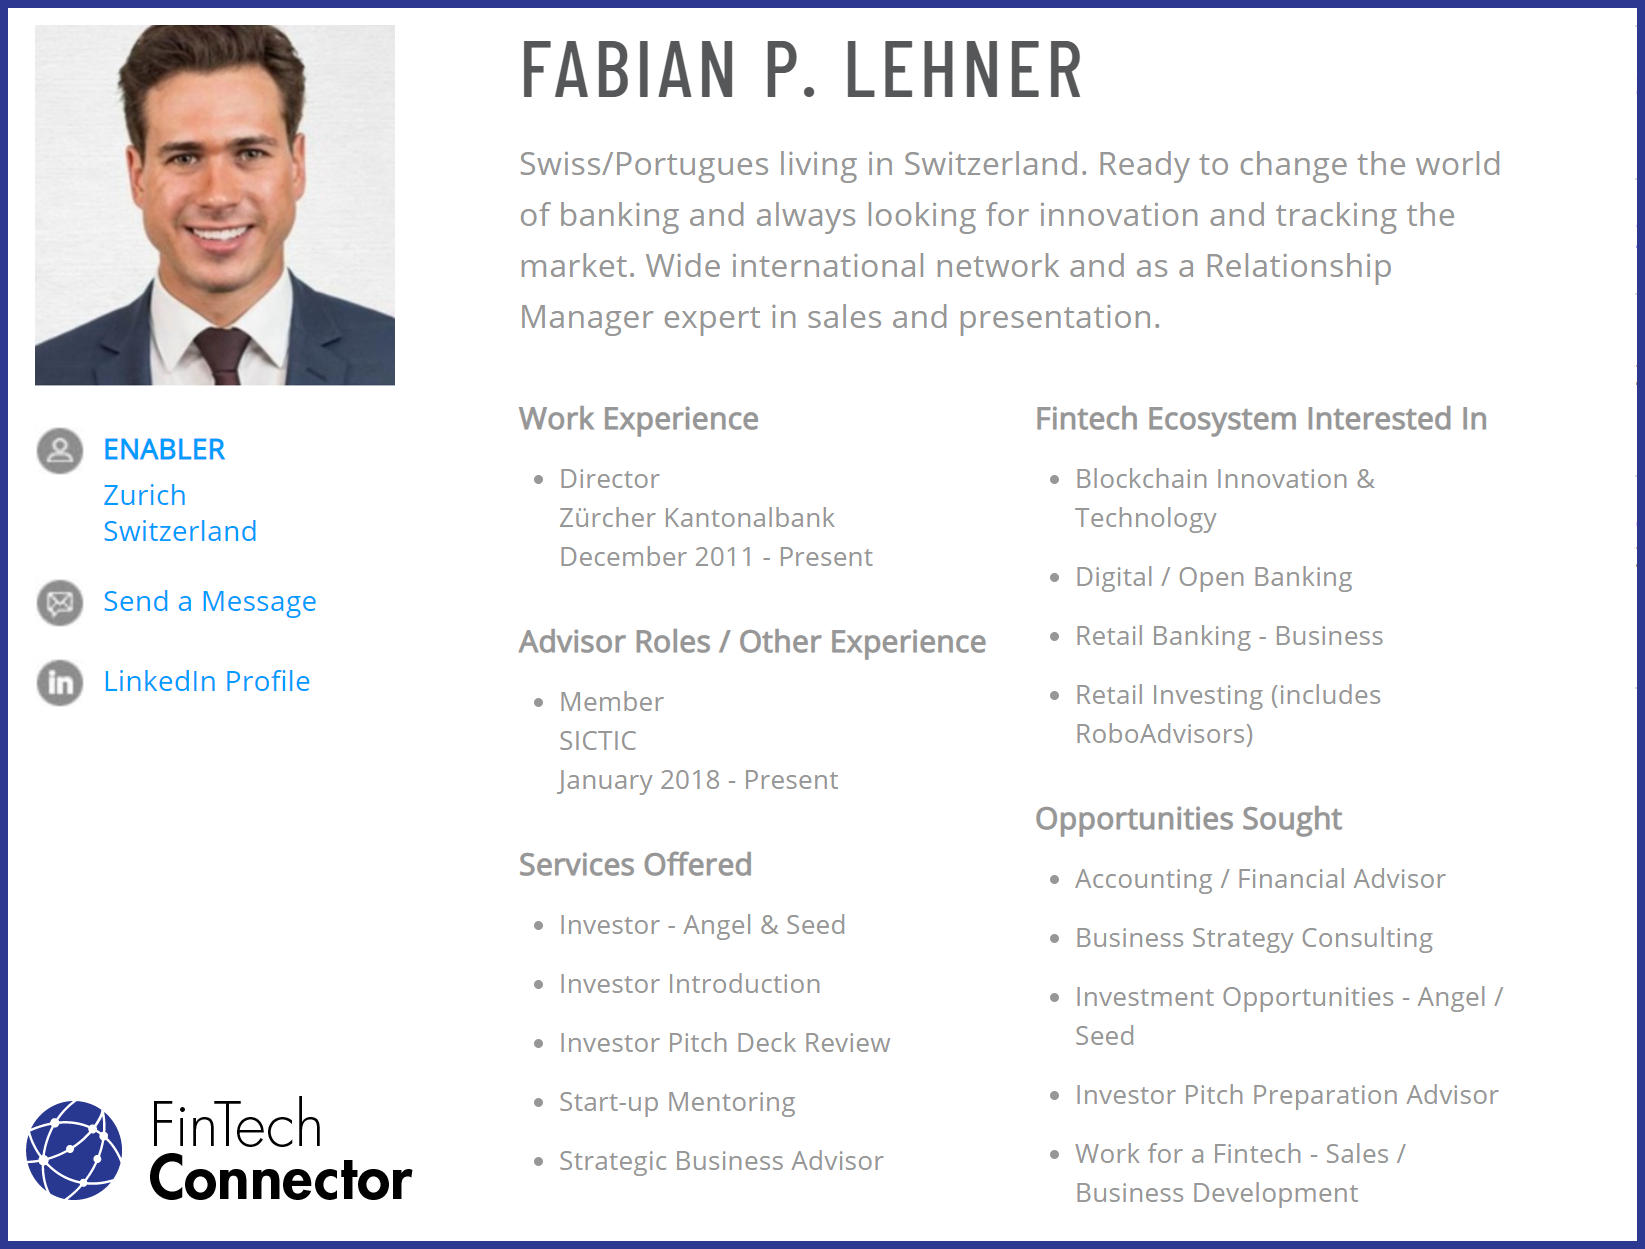 Connect with Fabian Lehner via FinTech Connector